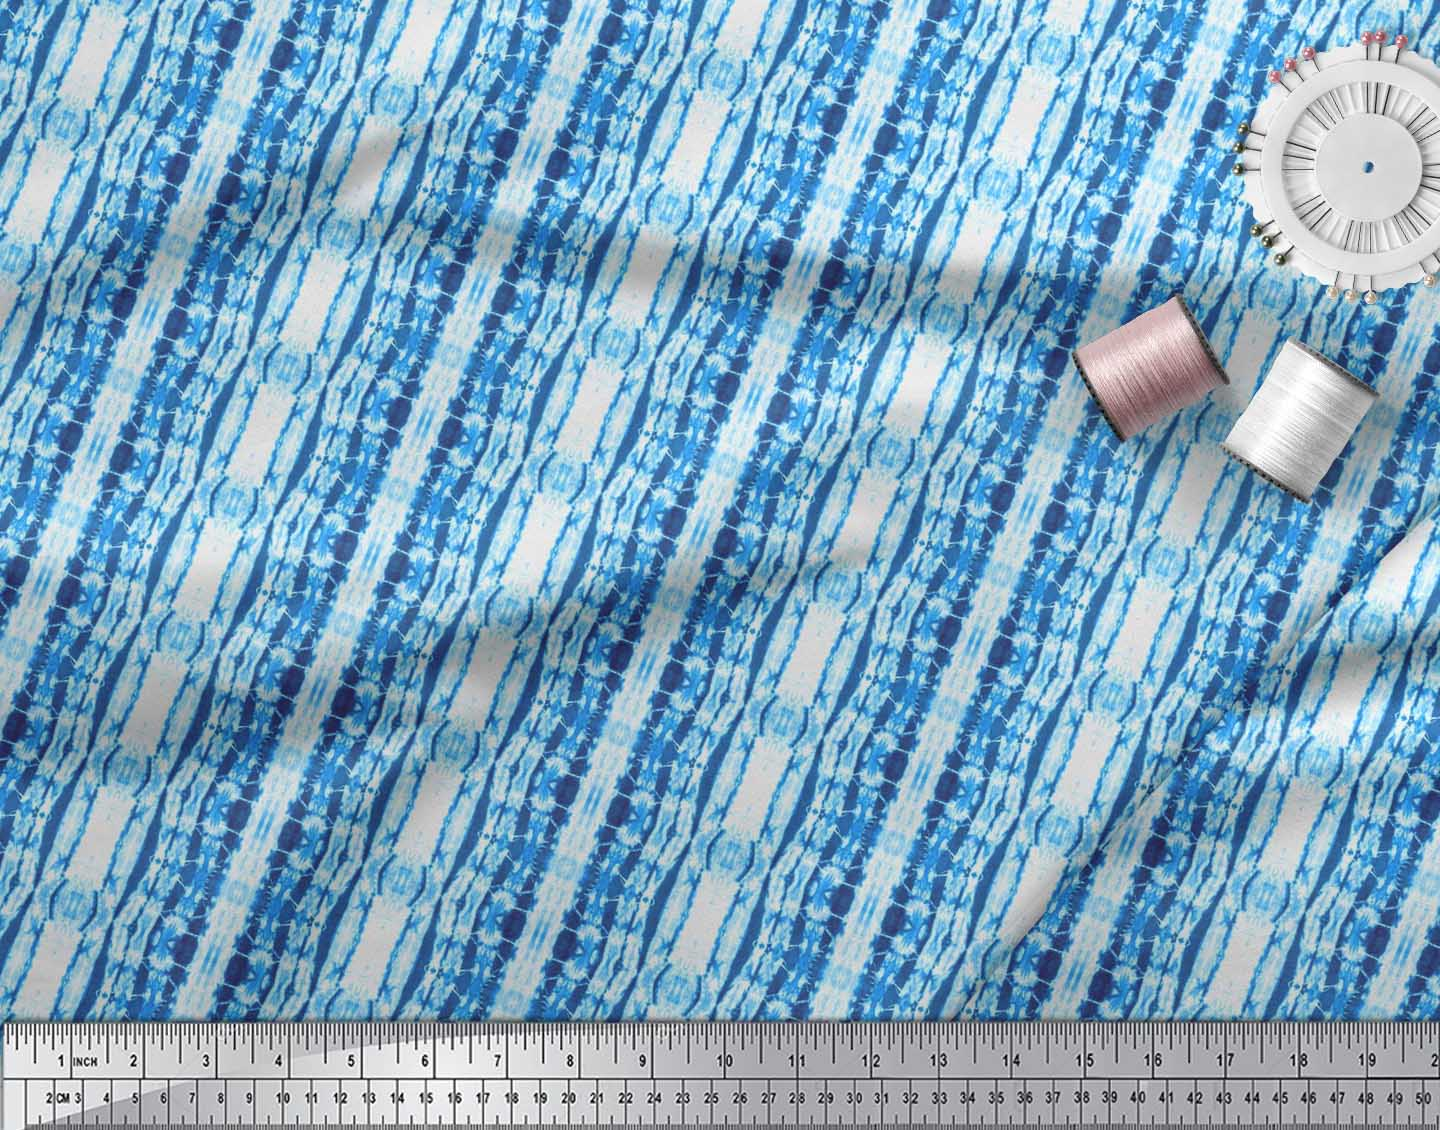 Soimoi-Blue-Cotton-Poplin-Fabric-Ombre-Tie-Dye-Print-Fabric-by-the-Kt4 thumbnail 4